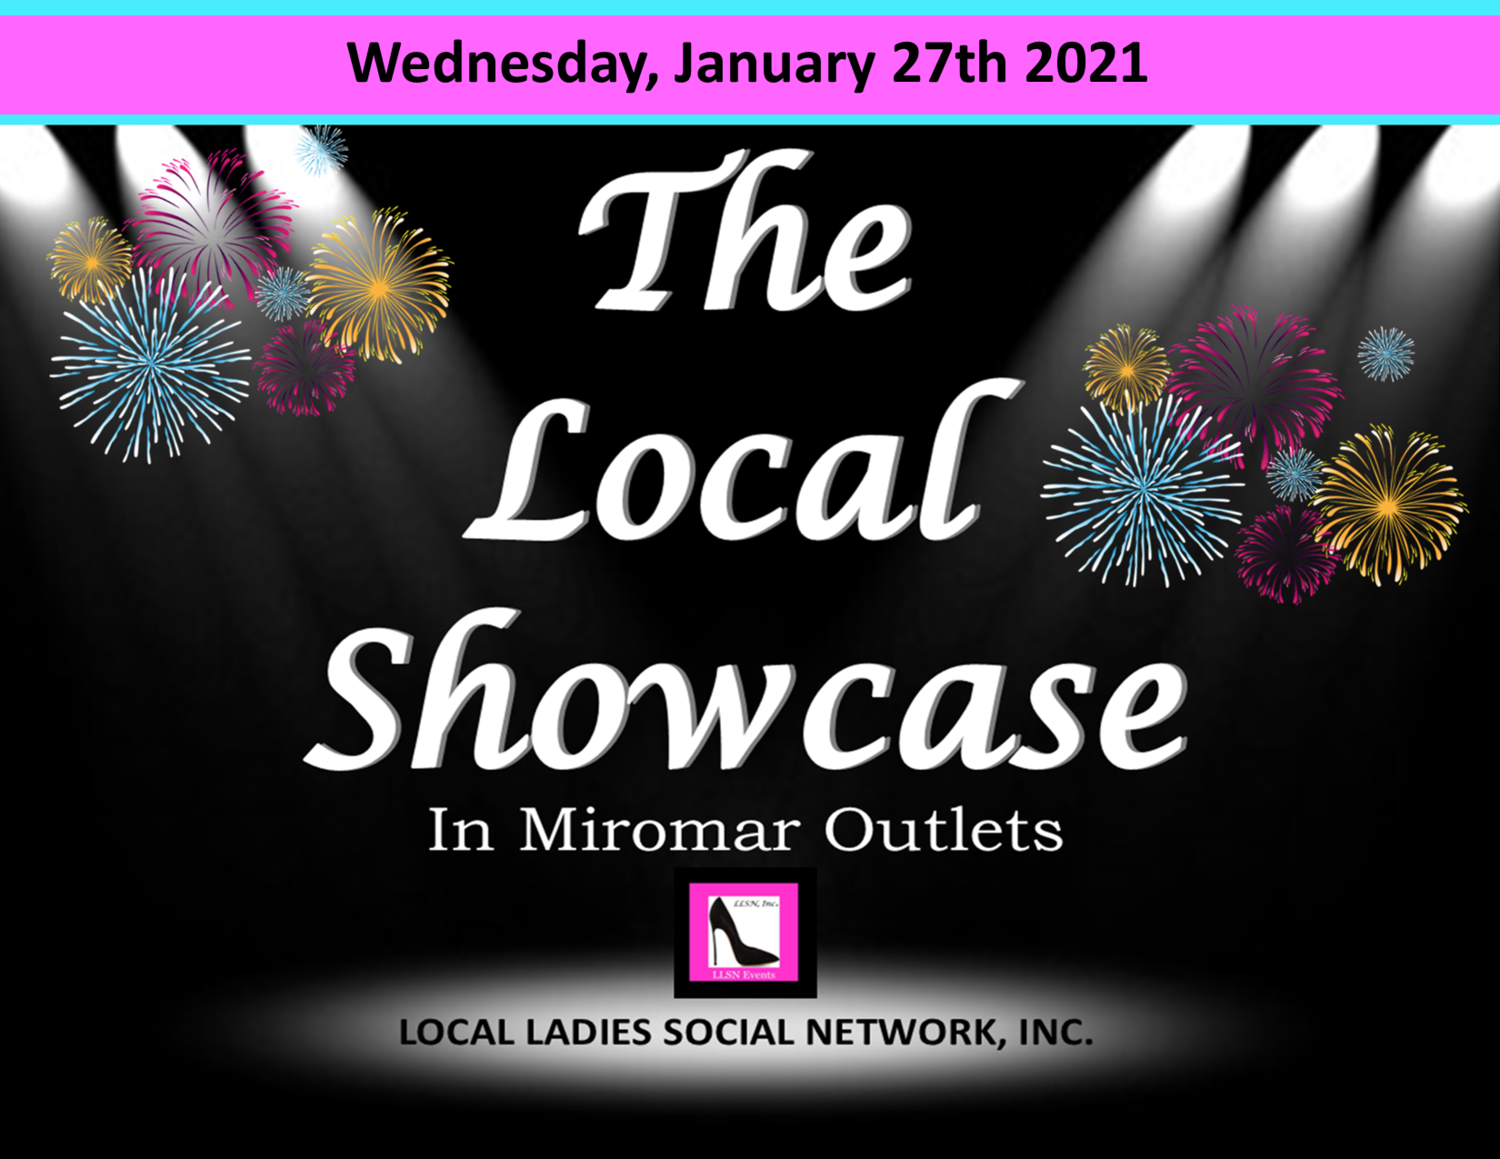 Wednesday, January 27th 11am-7pm